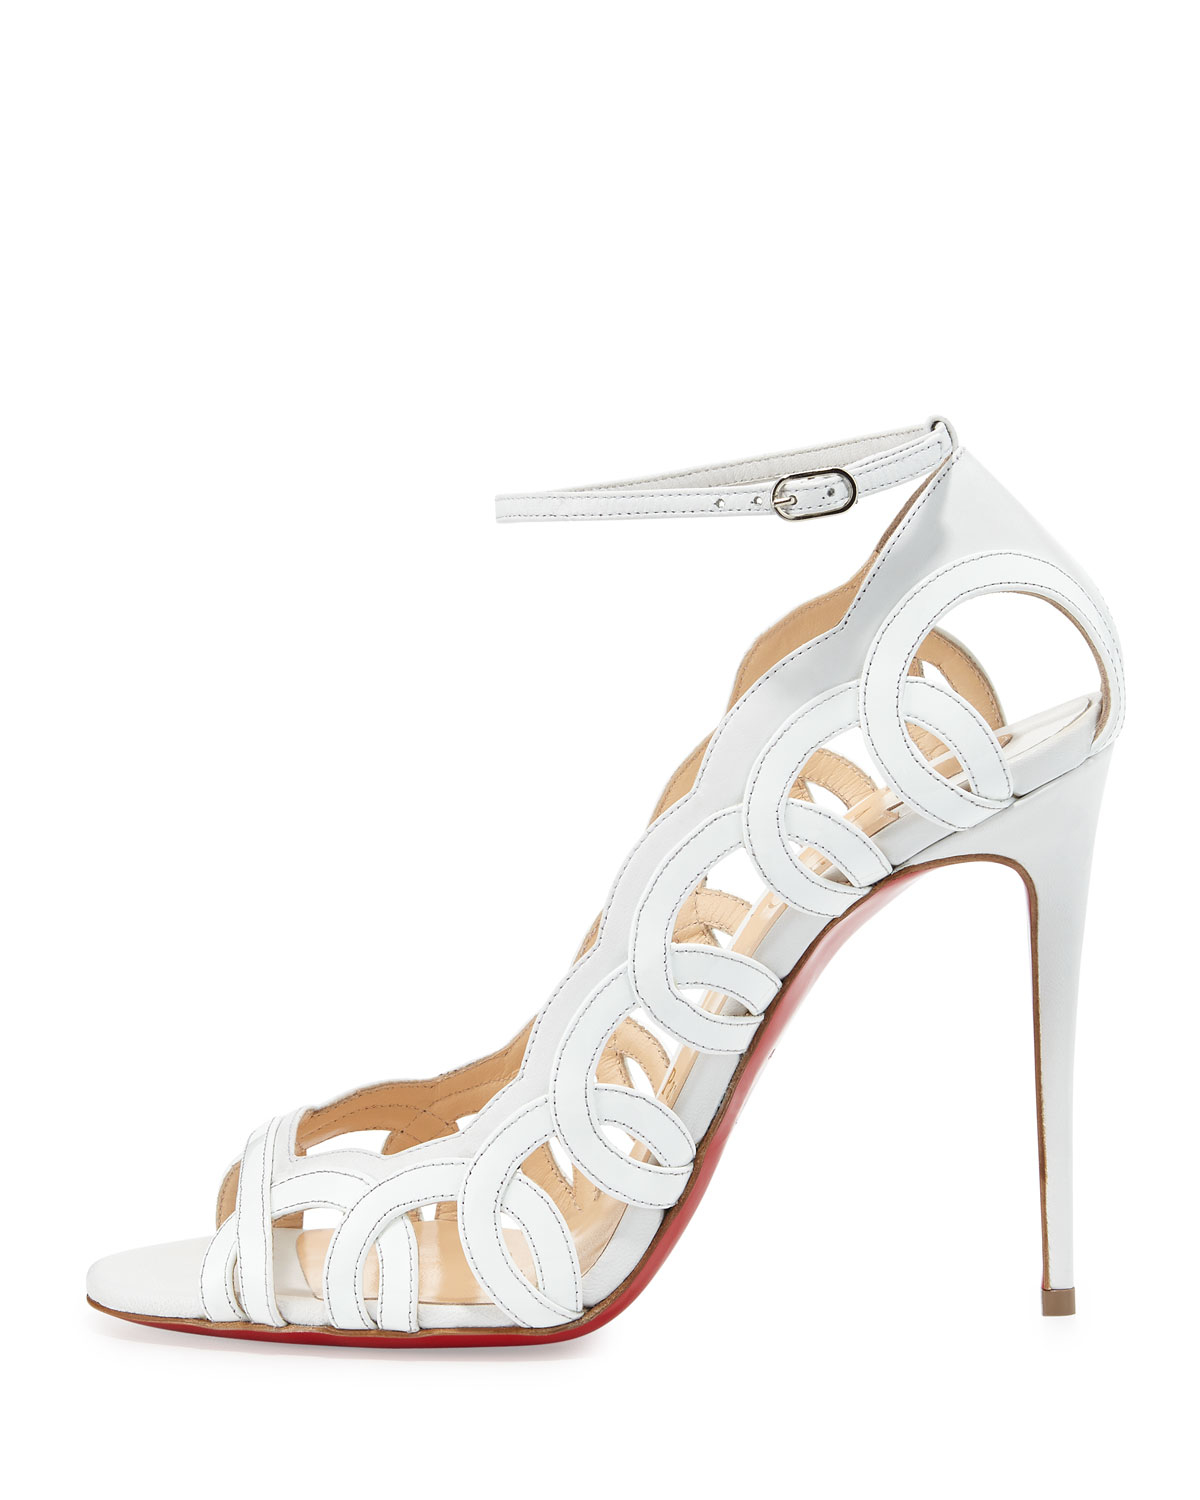 3f0eac1d851 Lyst - Christian Louboutin Houla Hot Cut-Out Leather Pumps in White